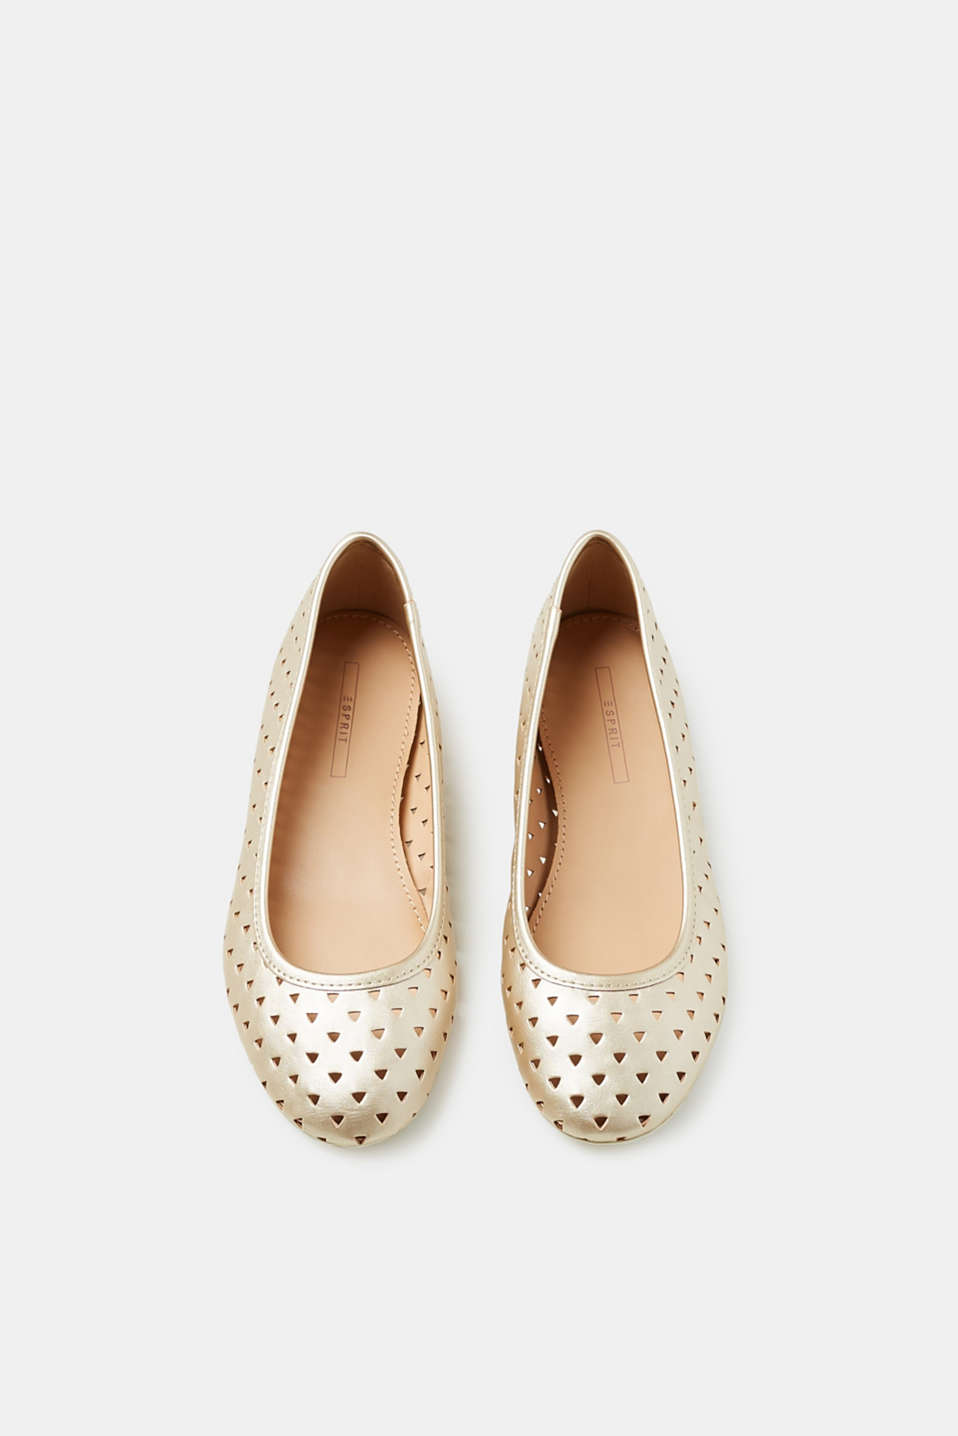 Perforated metallic ballerinas in faux leather